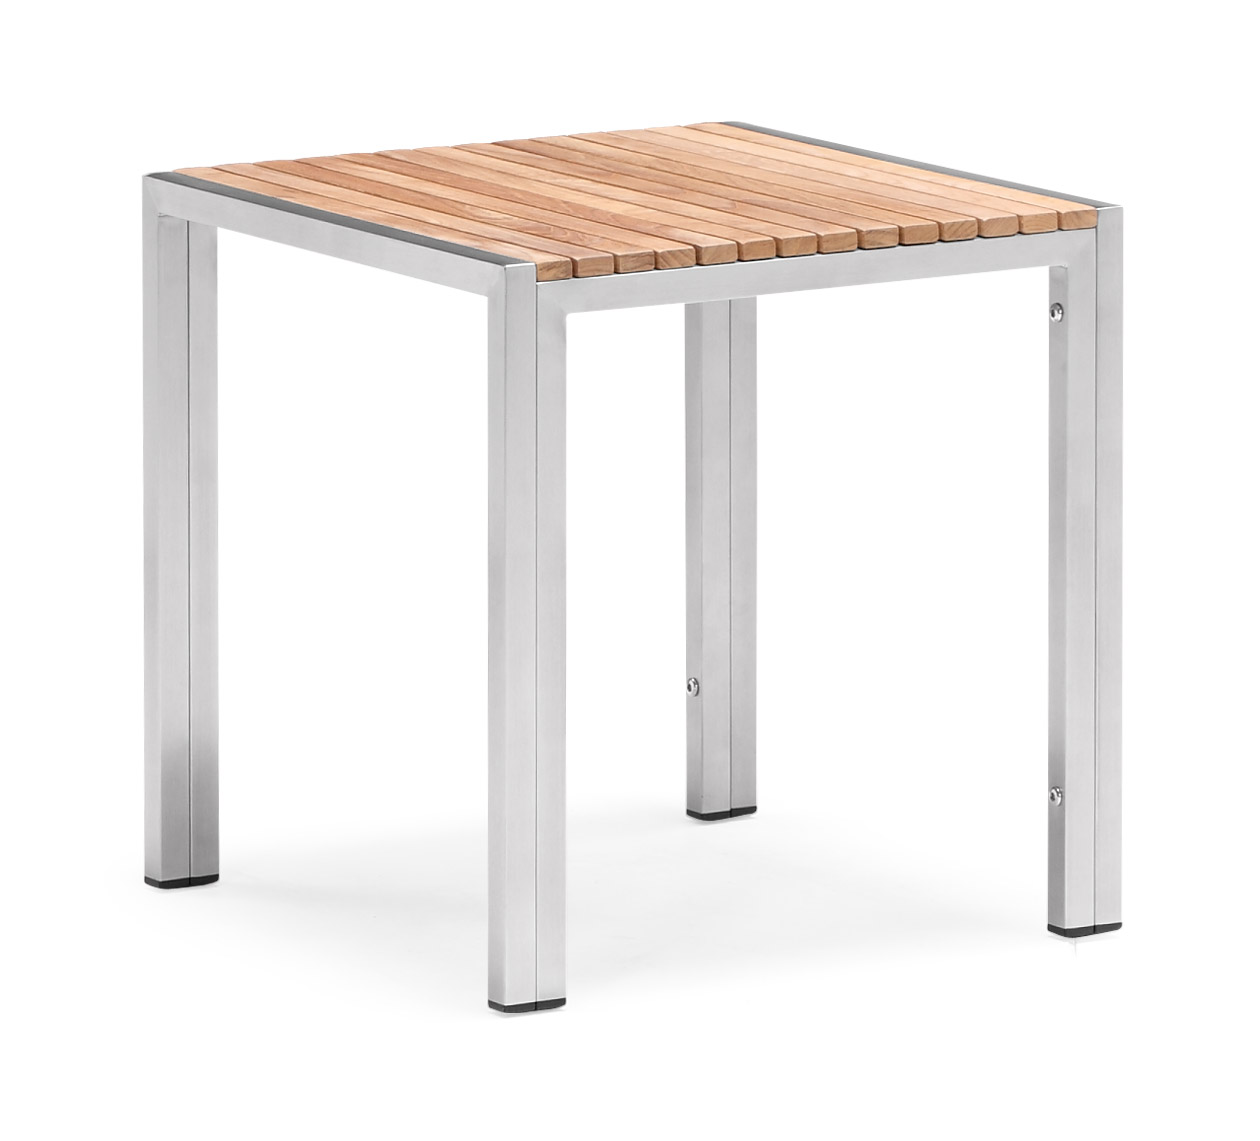 Outdoor square dining table teak table (T004MB)